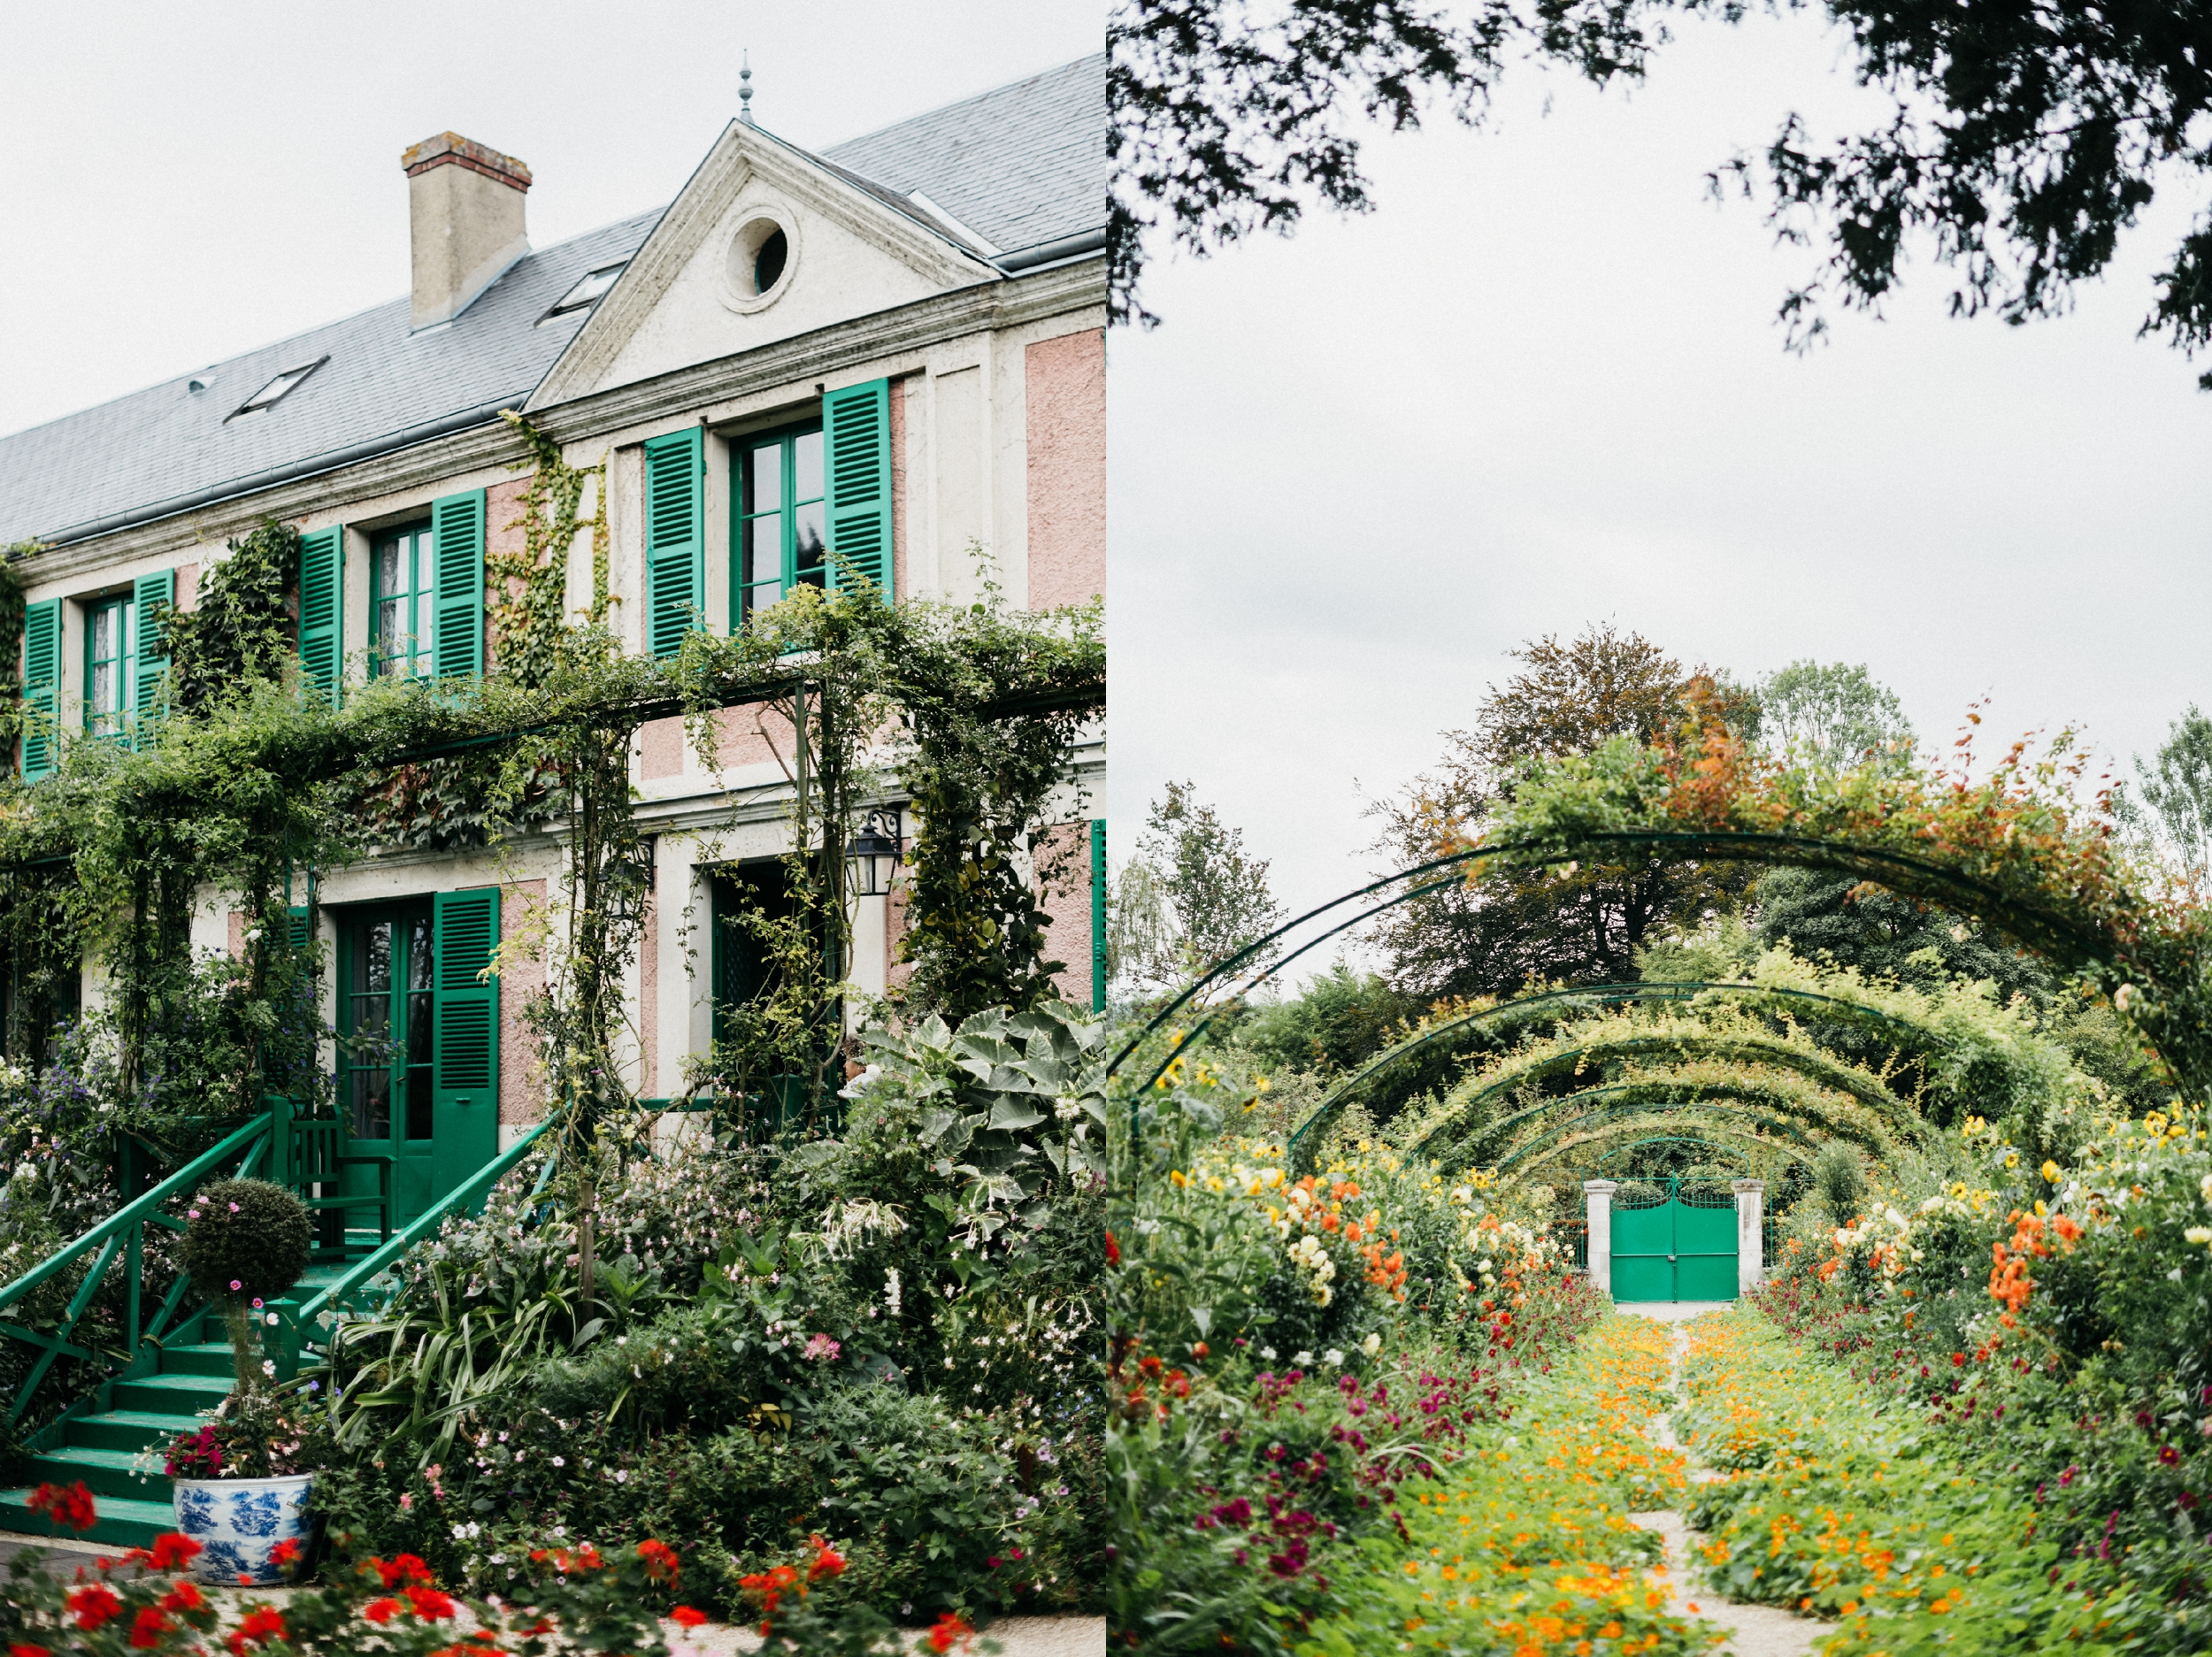 desiree-gardner-photography-pairs-france-monet-garden-monets-couple-wedding-engagement-giverny-30-a-30a-florida_0027.jpg